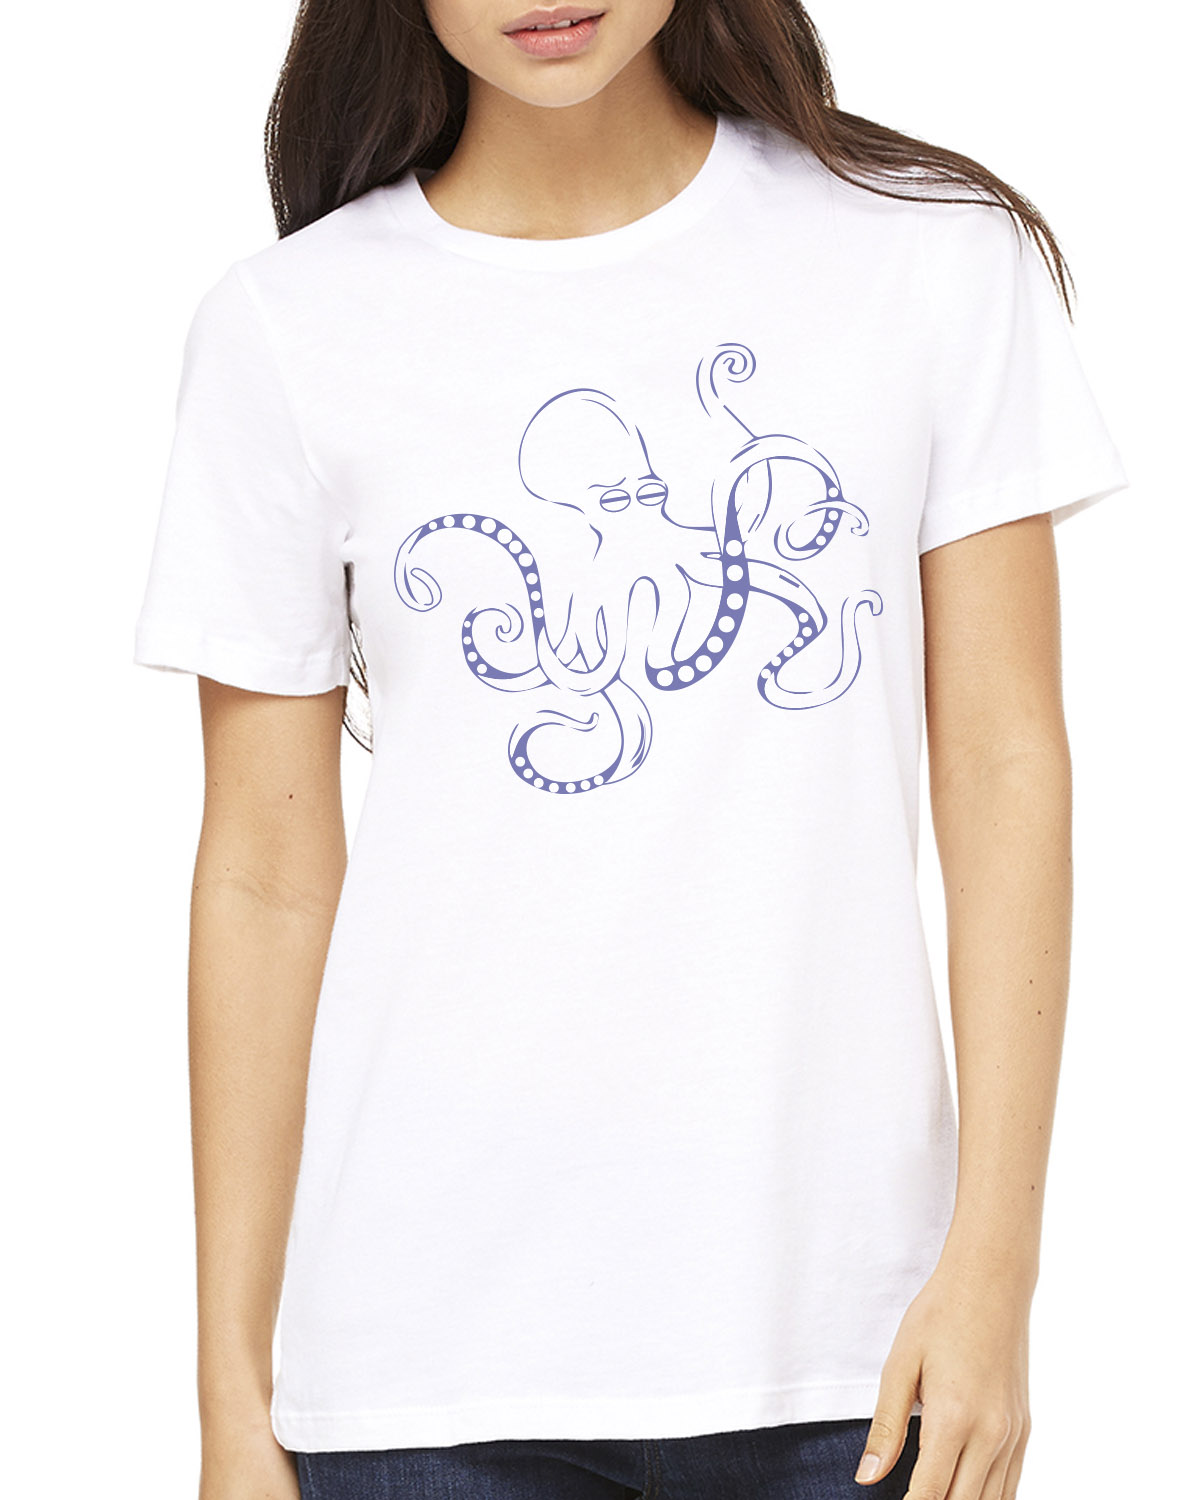 Women's Short sleeve crew neck t-shirt (White)